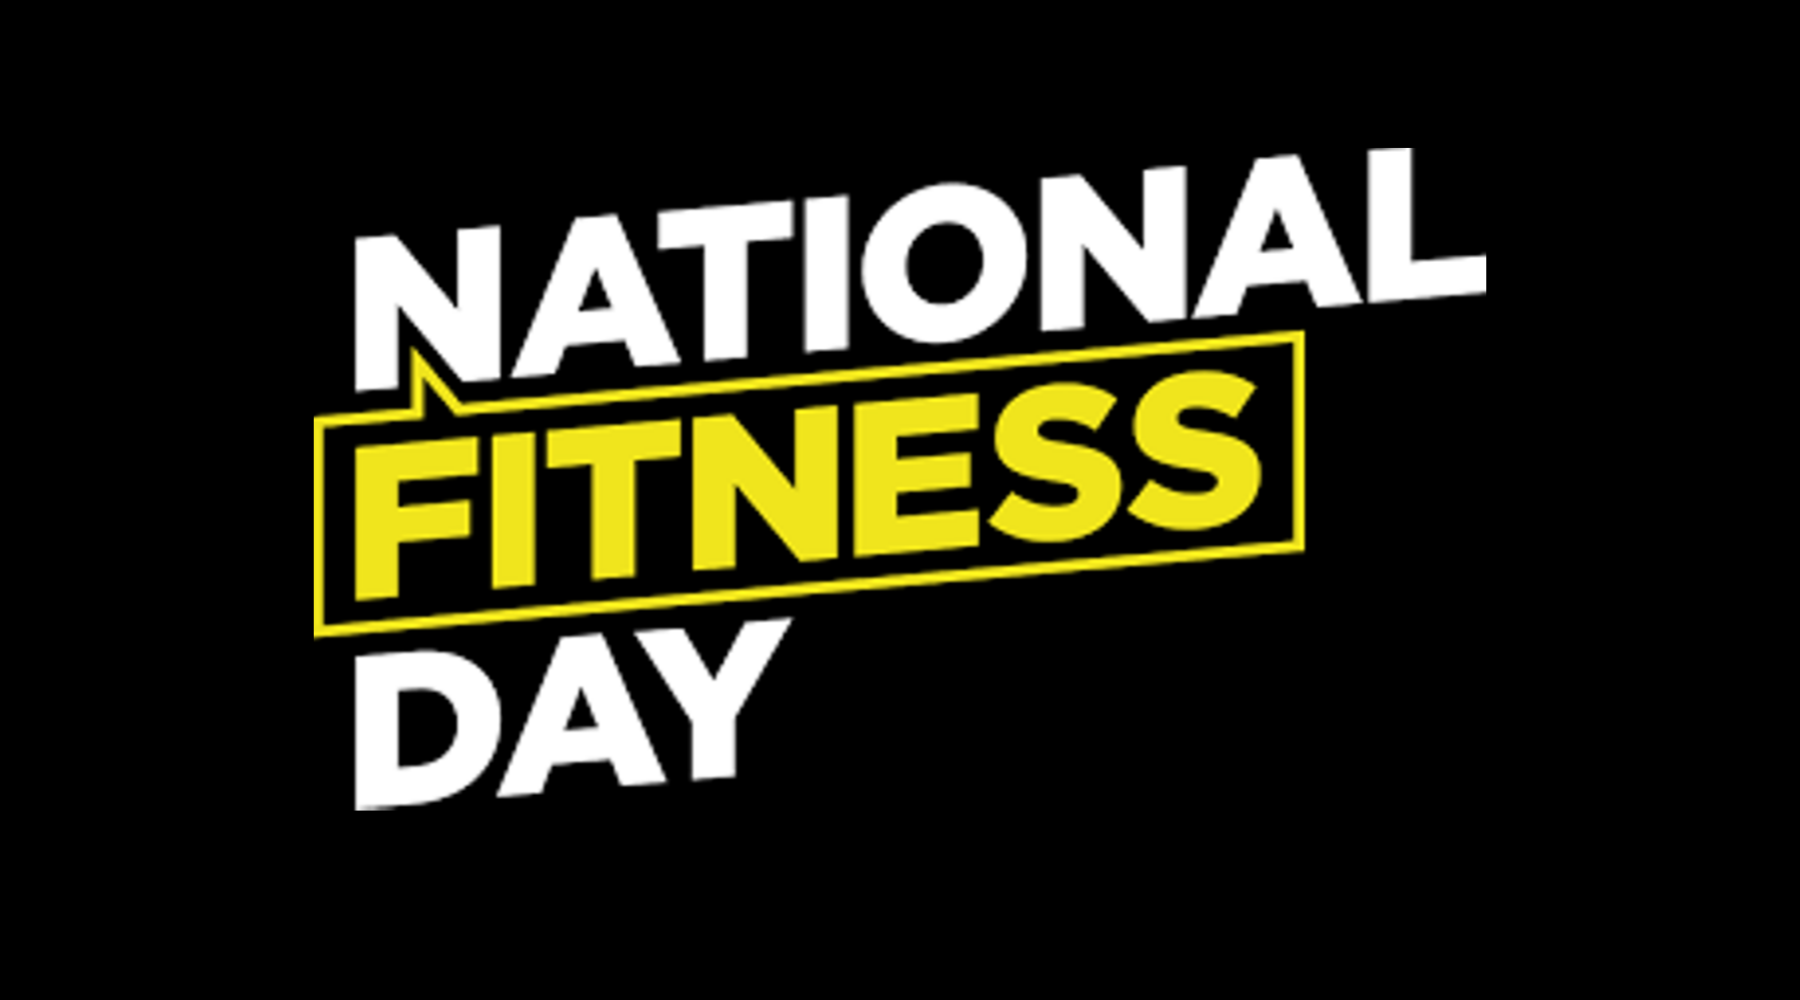 National Fitness Day 2019